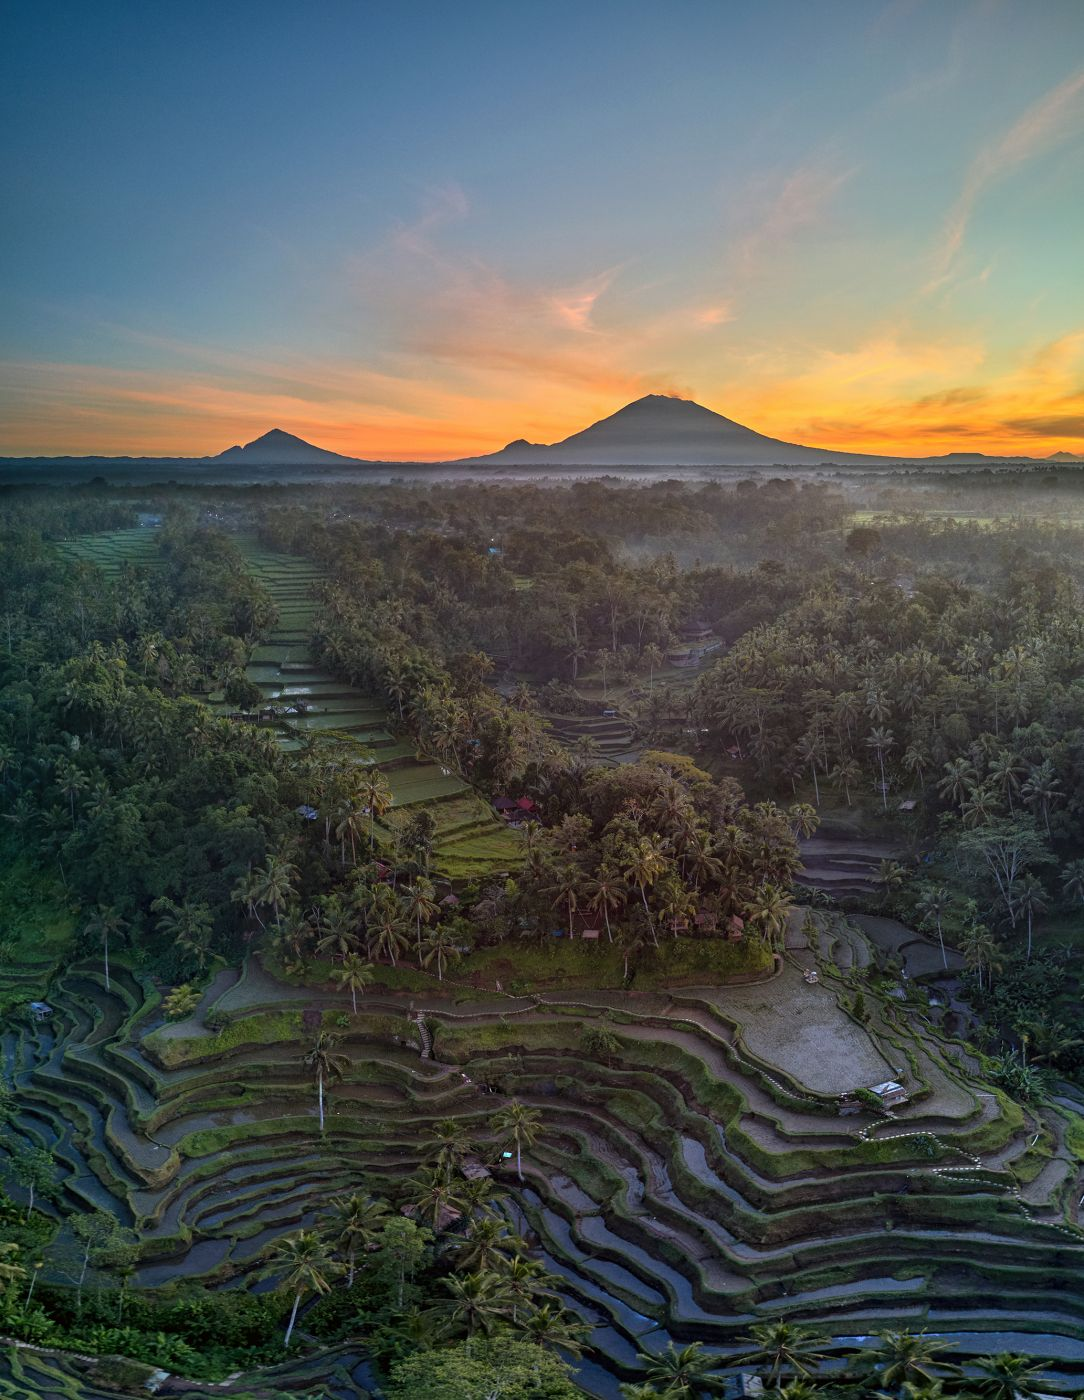 Tegallalang Rice Terraces, Indonesia